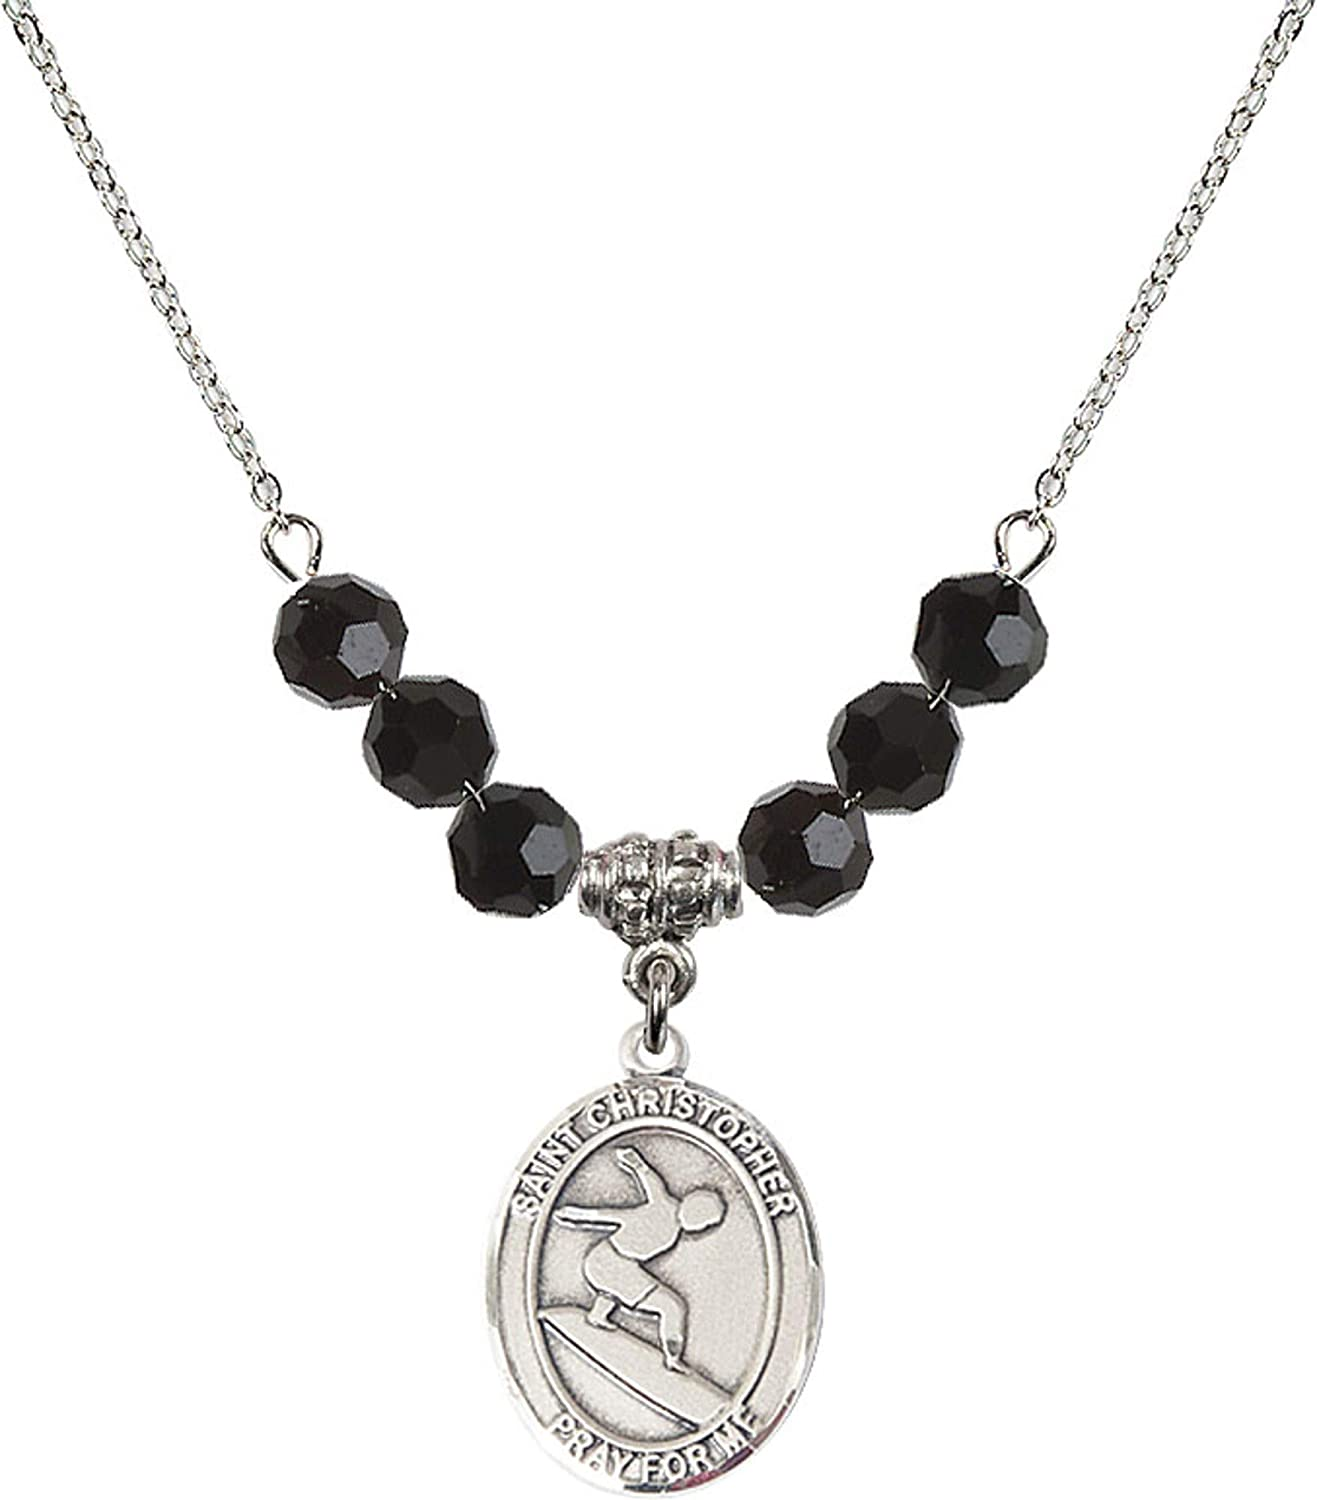 Bonyak Jewelry 18 Inch Rhodium Plated Necklace w// 6mm Jet Birth Month Stone Beads and Saint Christopher//Surfing Charm